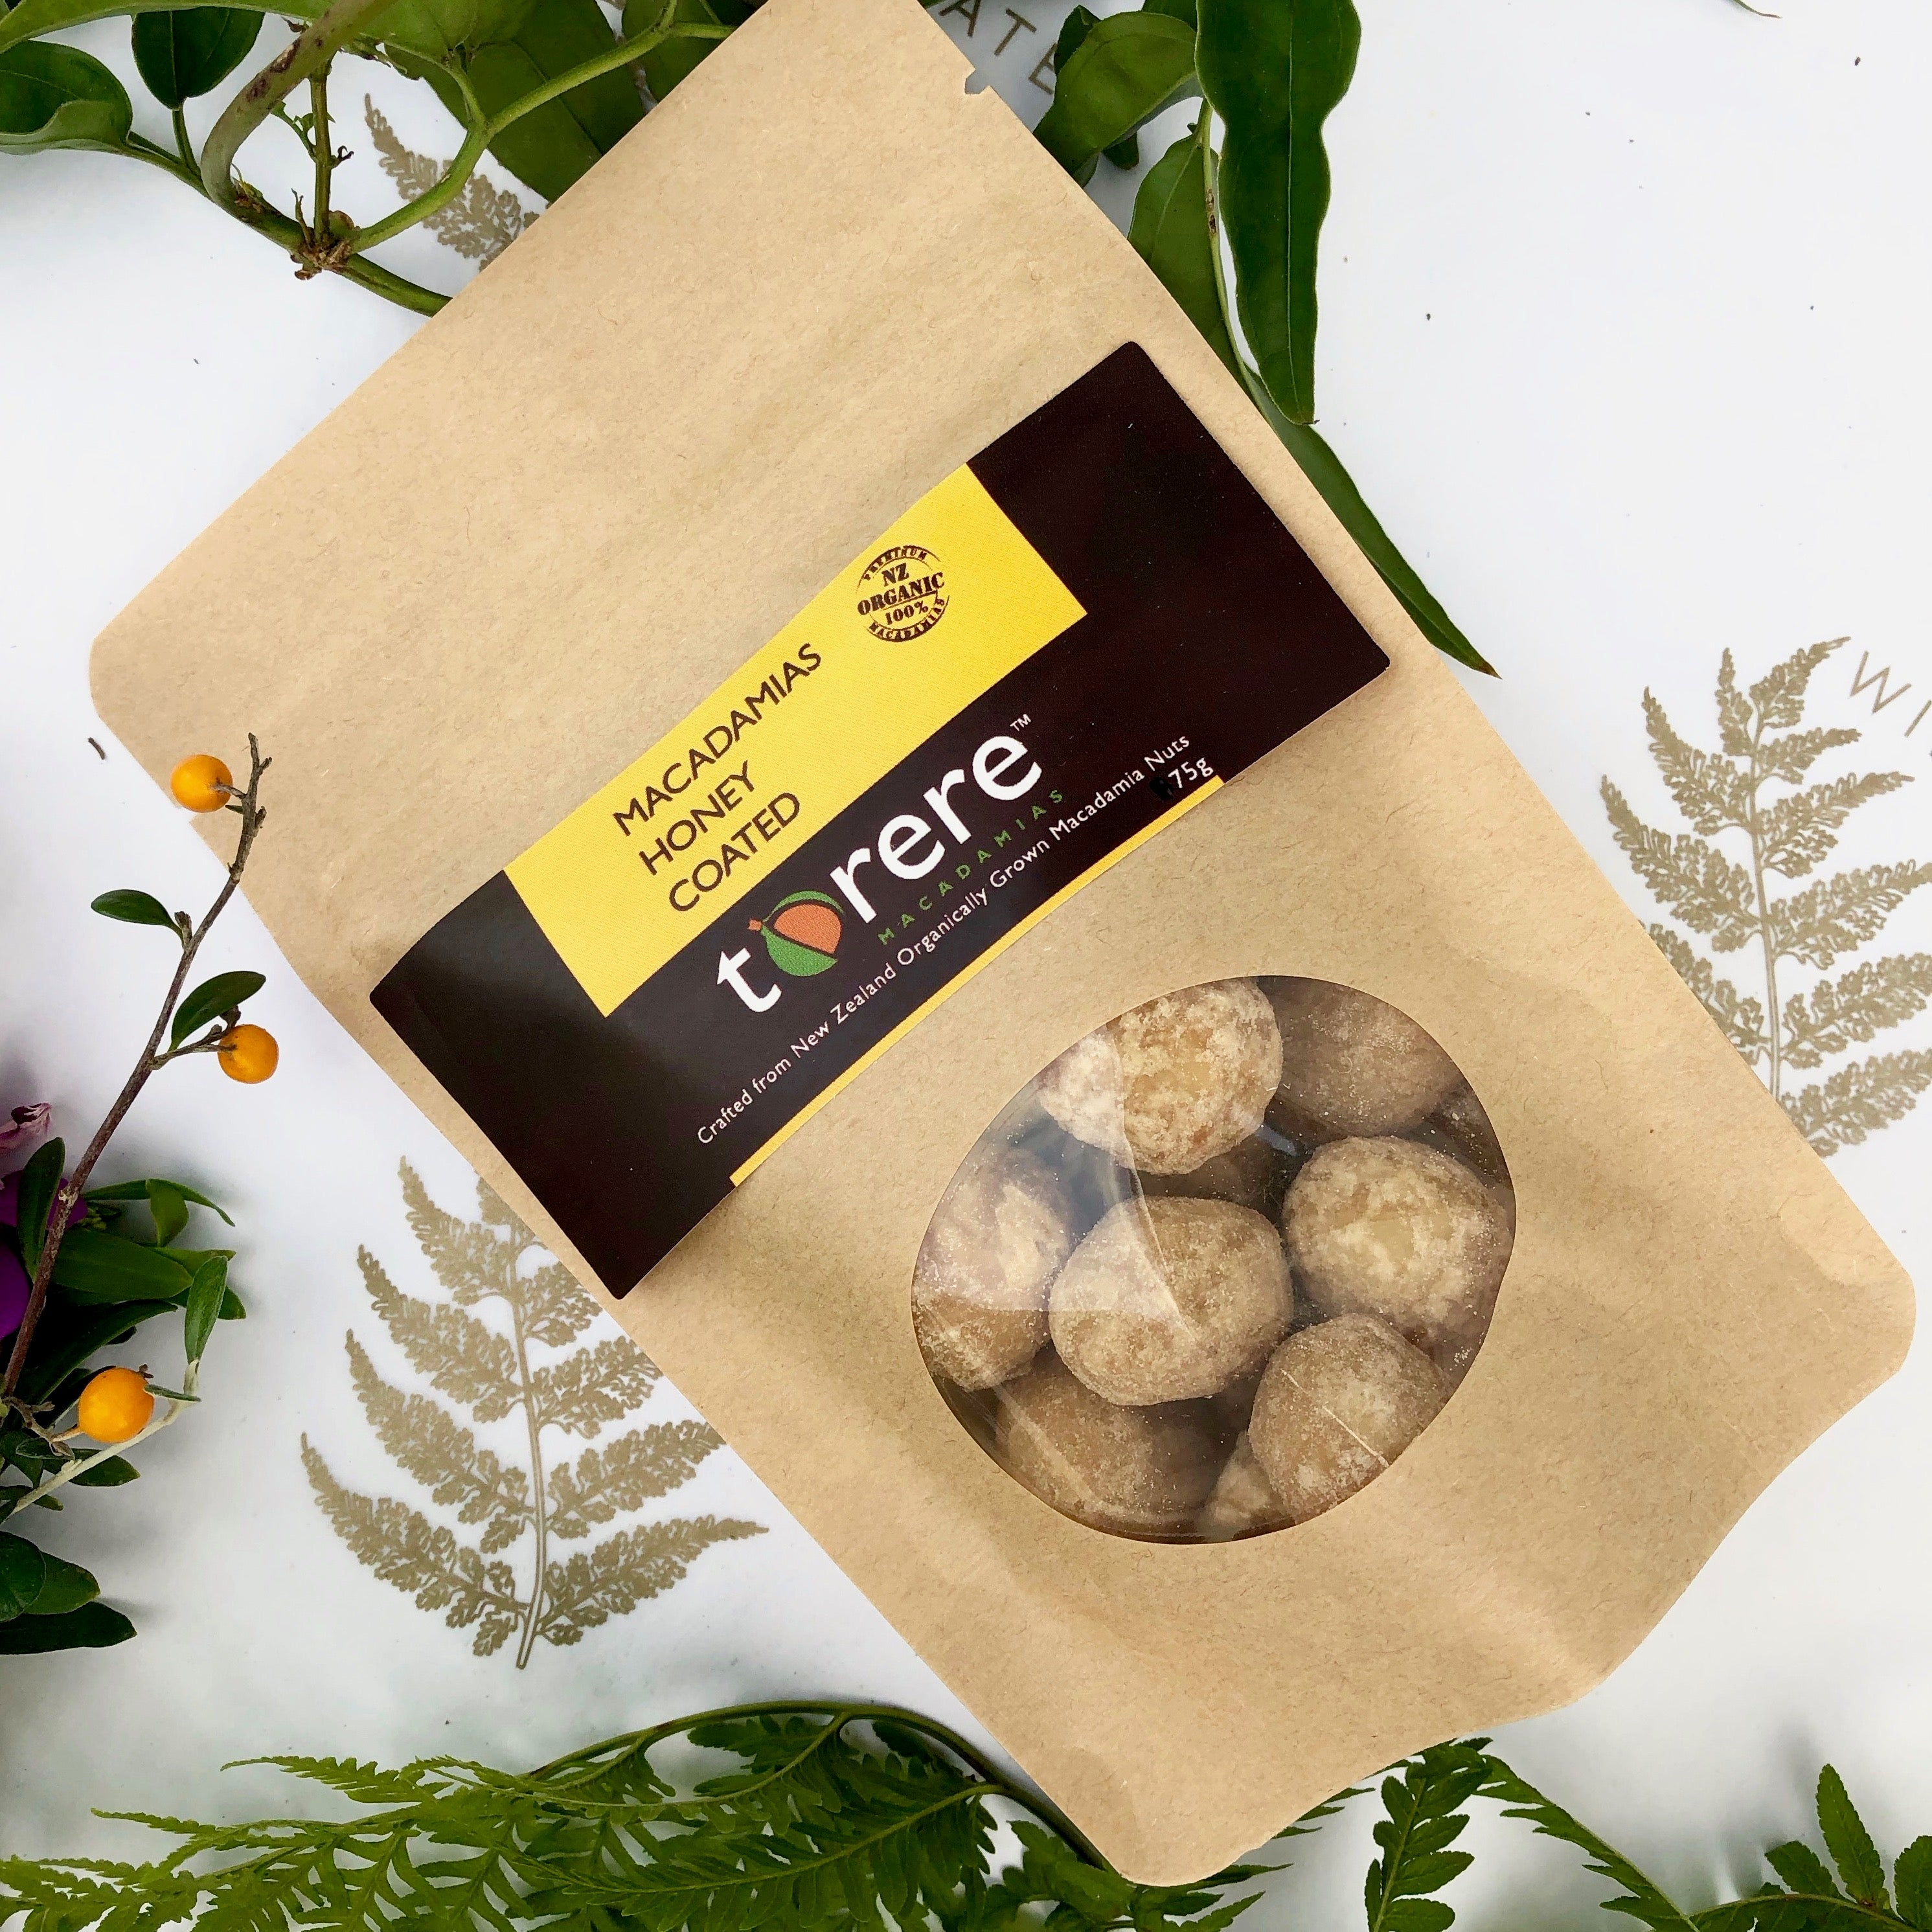 Honey Roasted Macadamia Nuts by Torere Macadamias